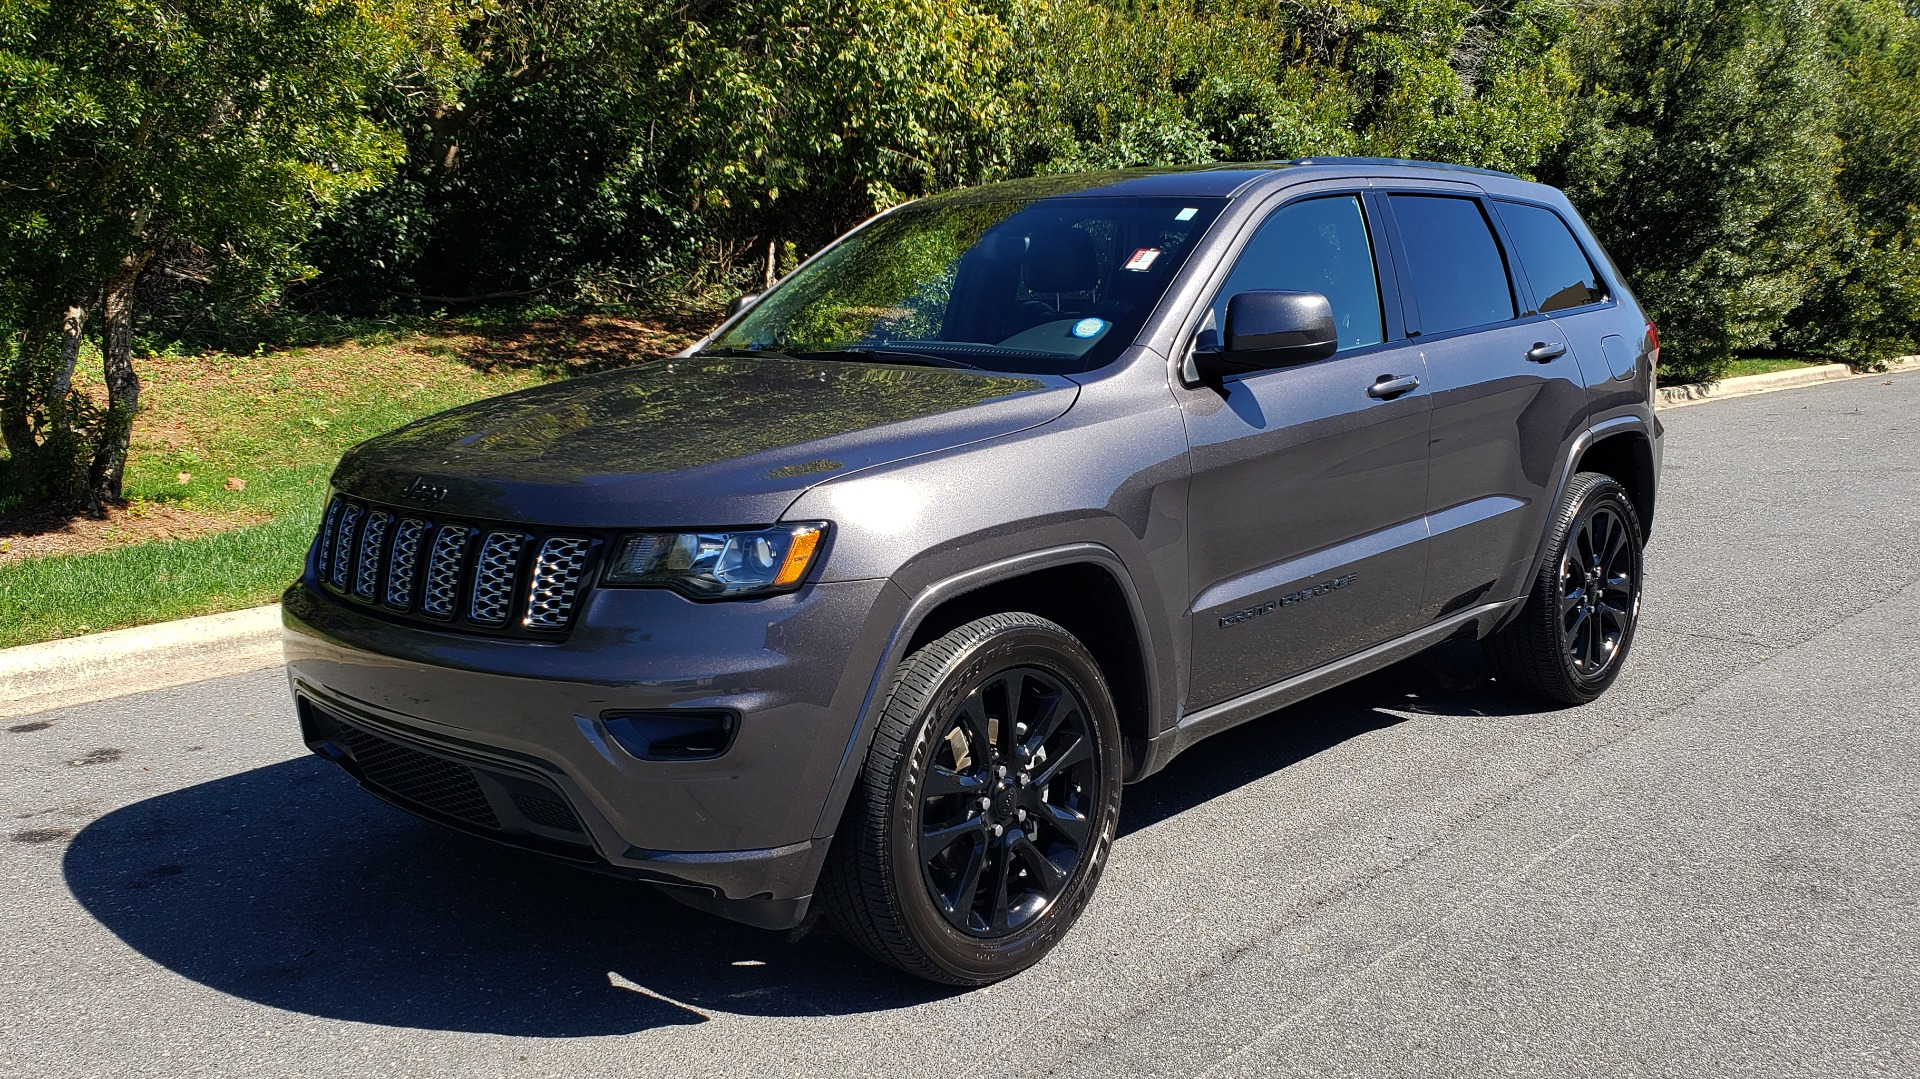 Used 2019 Jeep GRAND CHEROKEE ALTITUDE 4X4 / NAV / WIFI / SUNROOF / REARVIEW for sale $34,995 at Formula Imports in Charlotte NC 28227 1